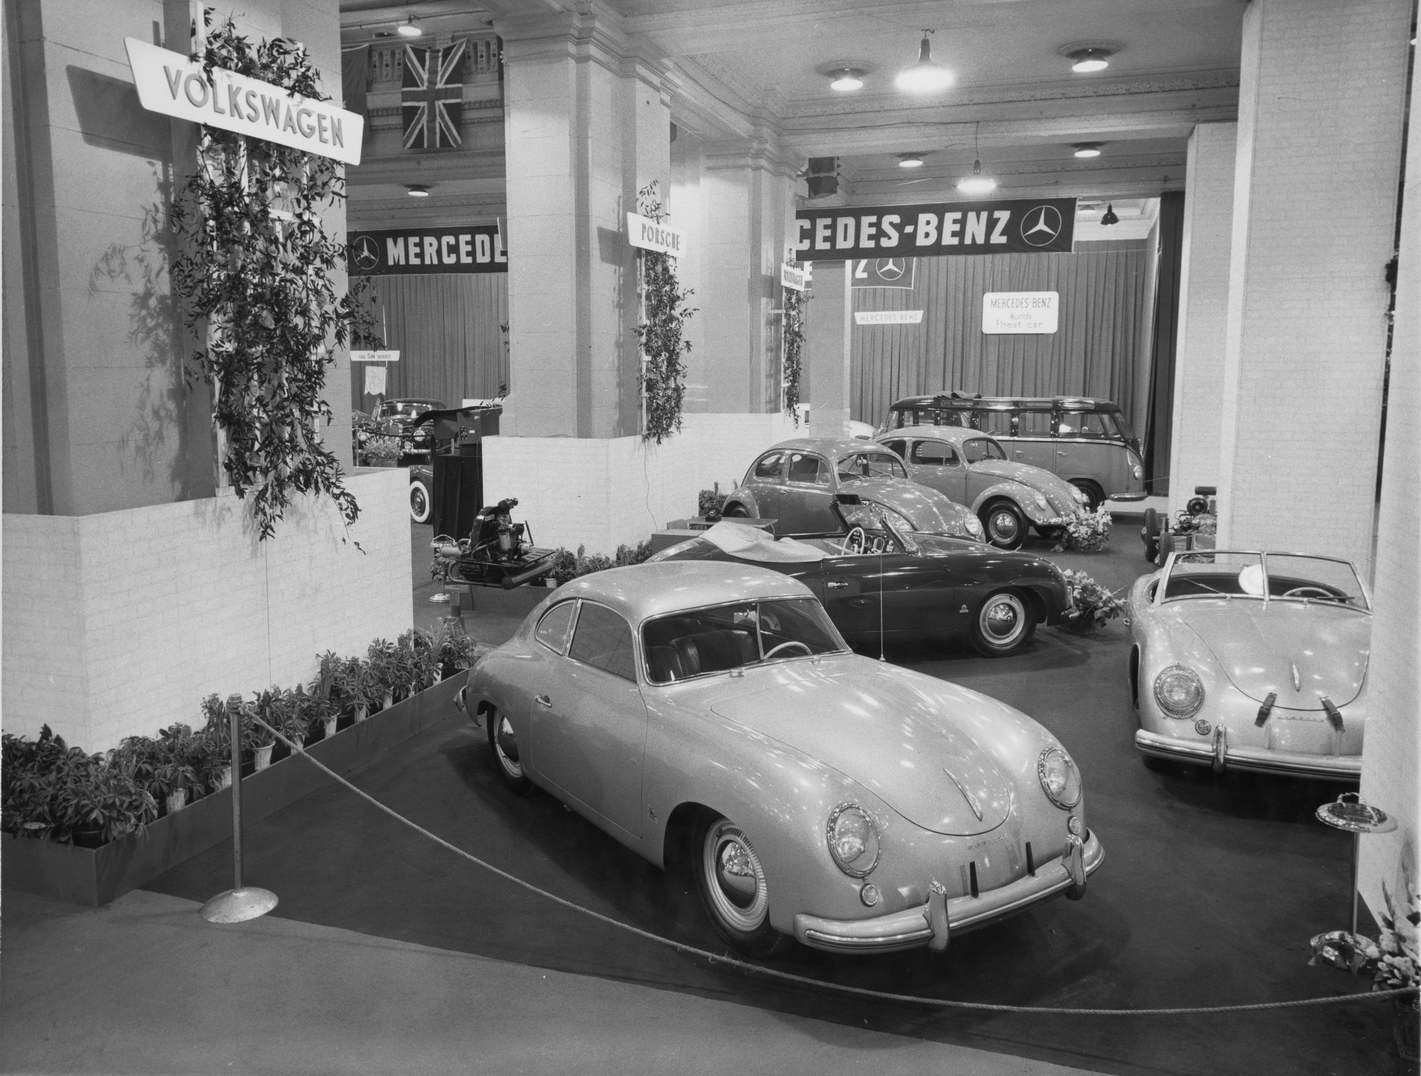 The Volkswagen/Porsche stand at the 1953 International Motor Sports Show in New York Grand Central Palace. (Picture courtesy flatsixes.com)